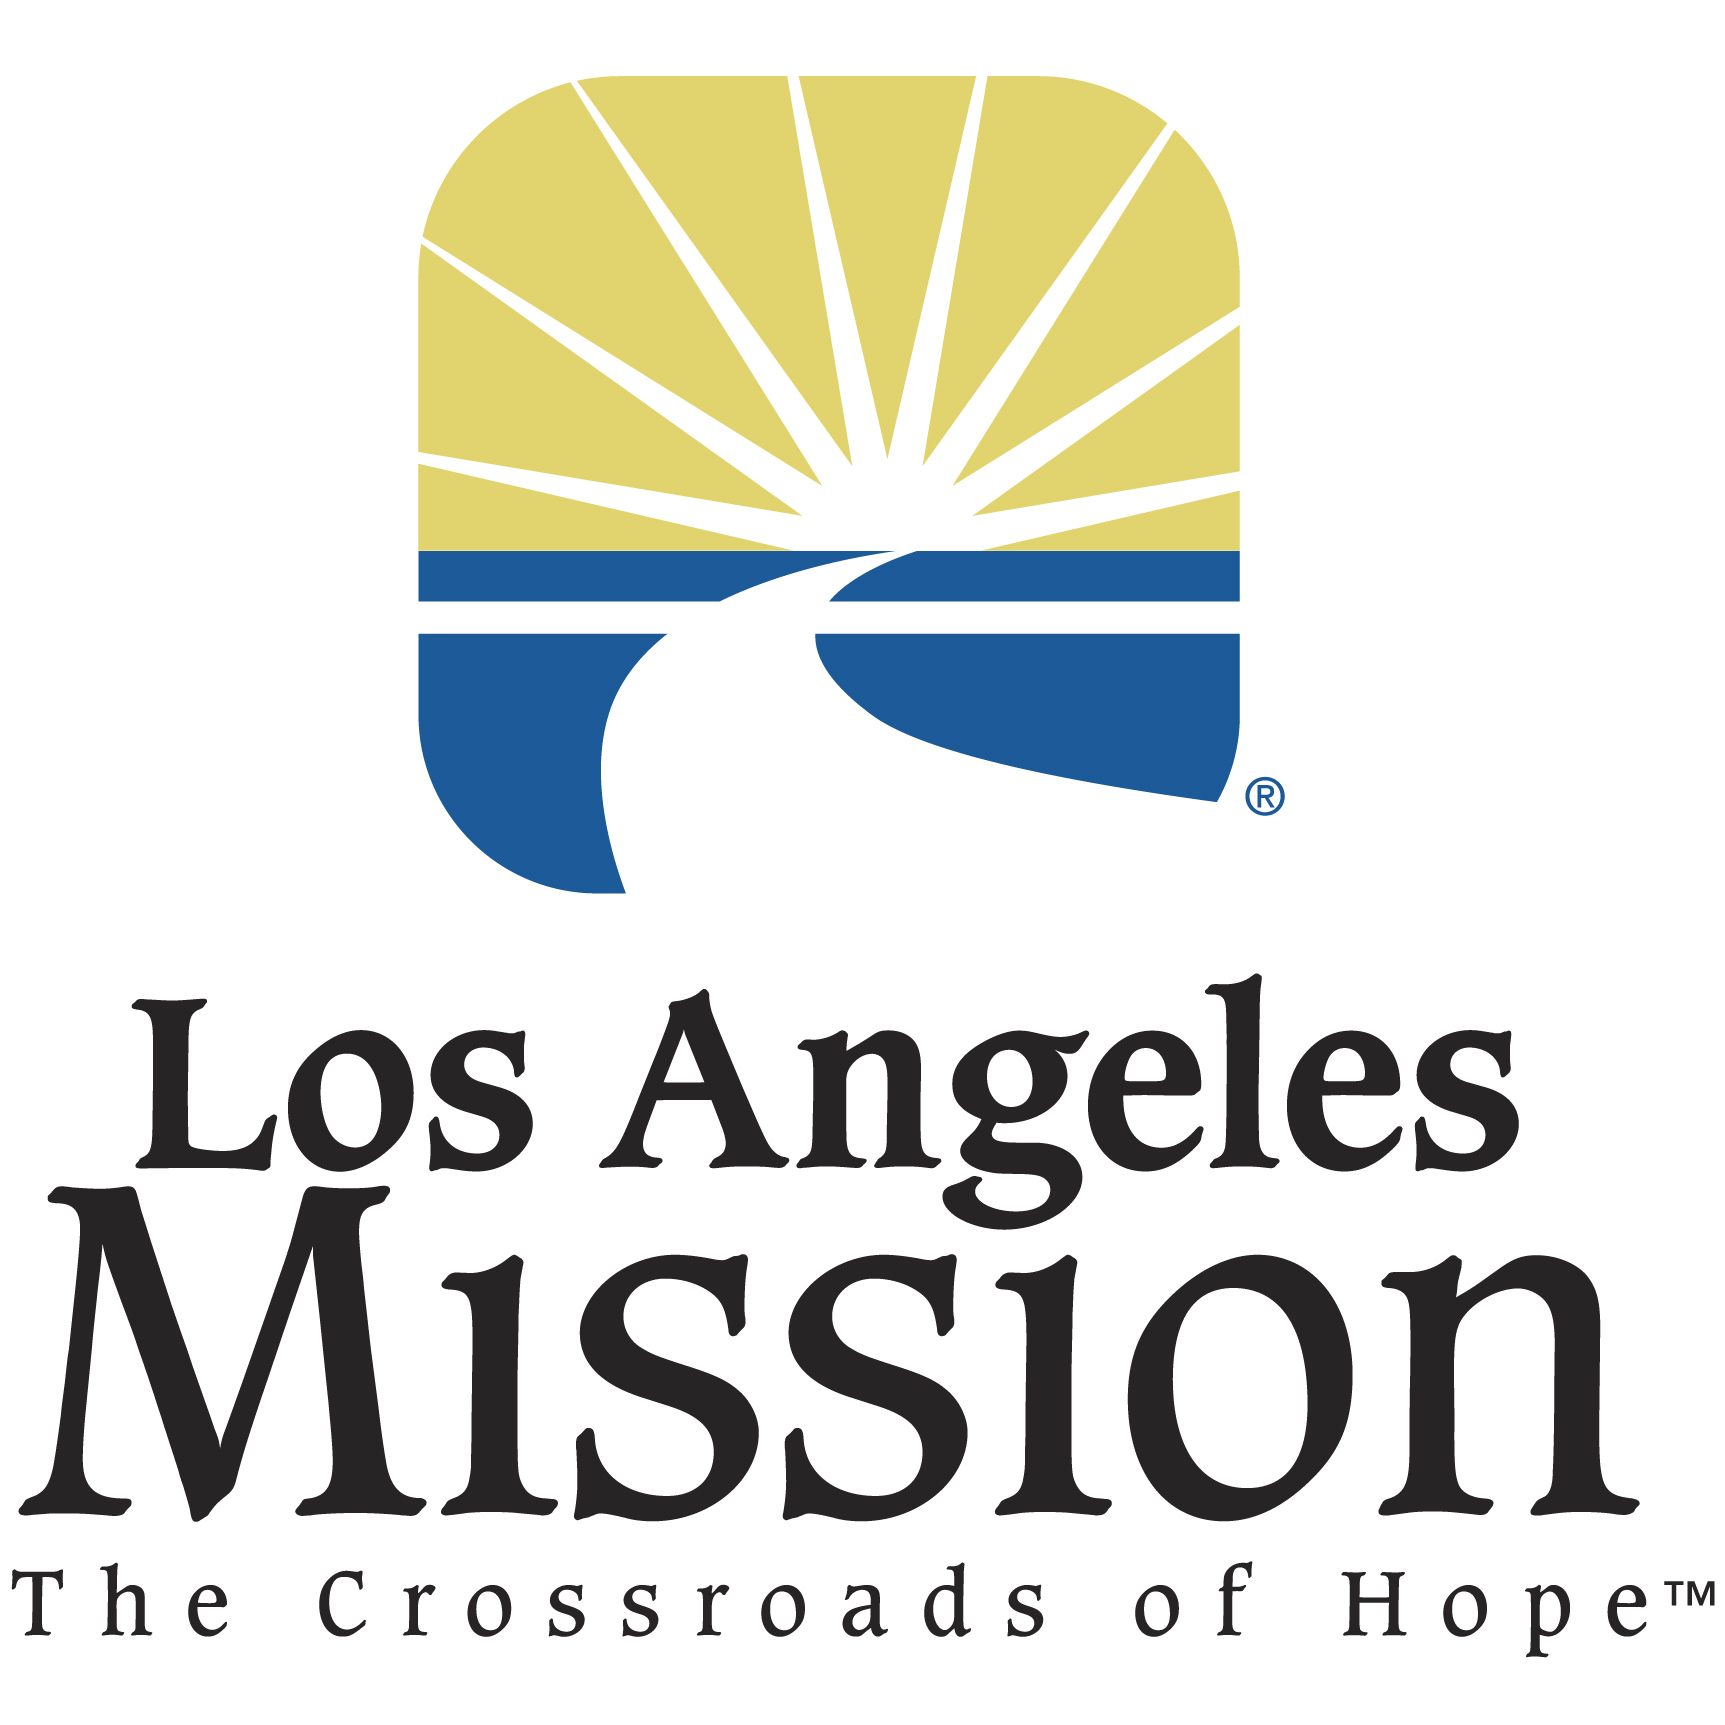 Los Angeles Mission